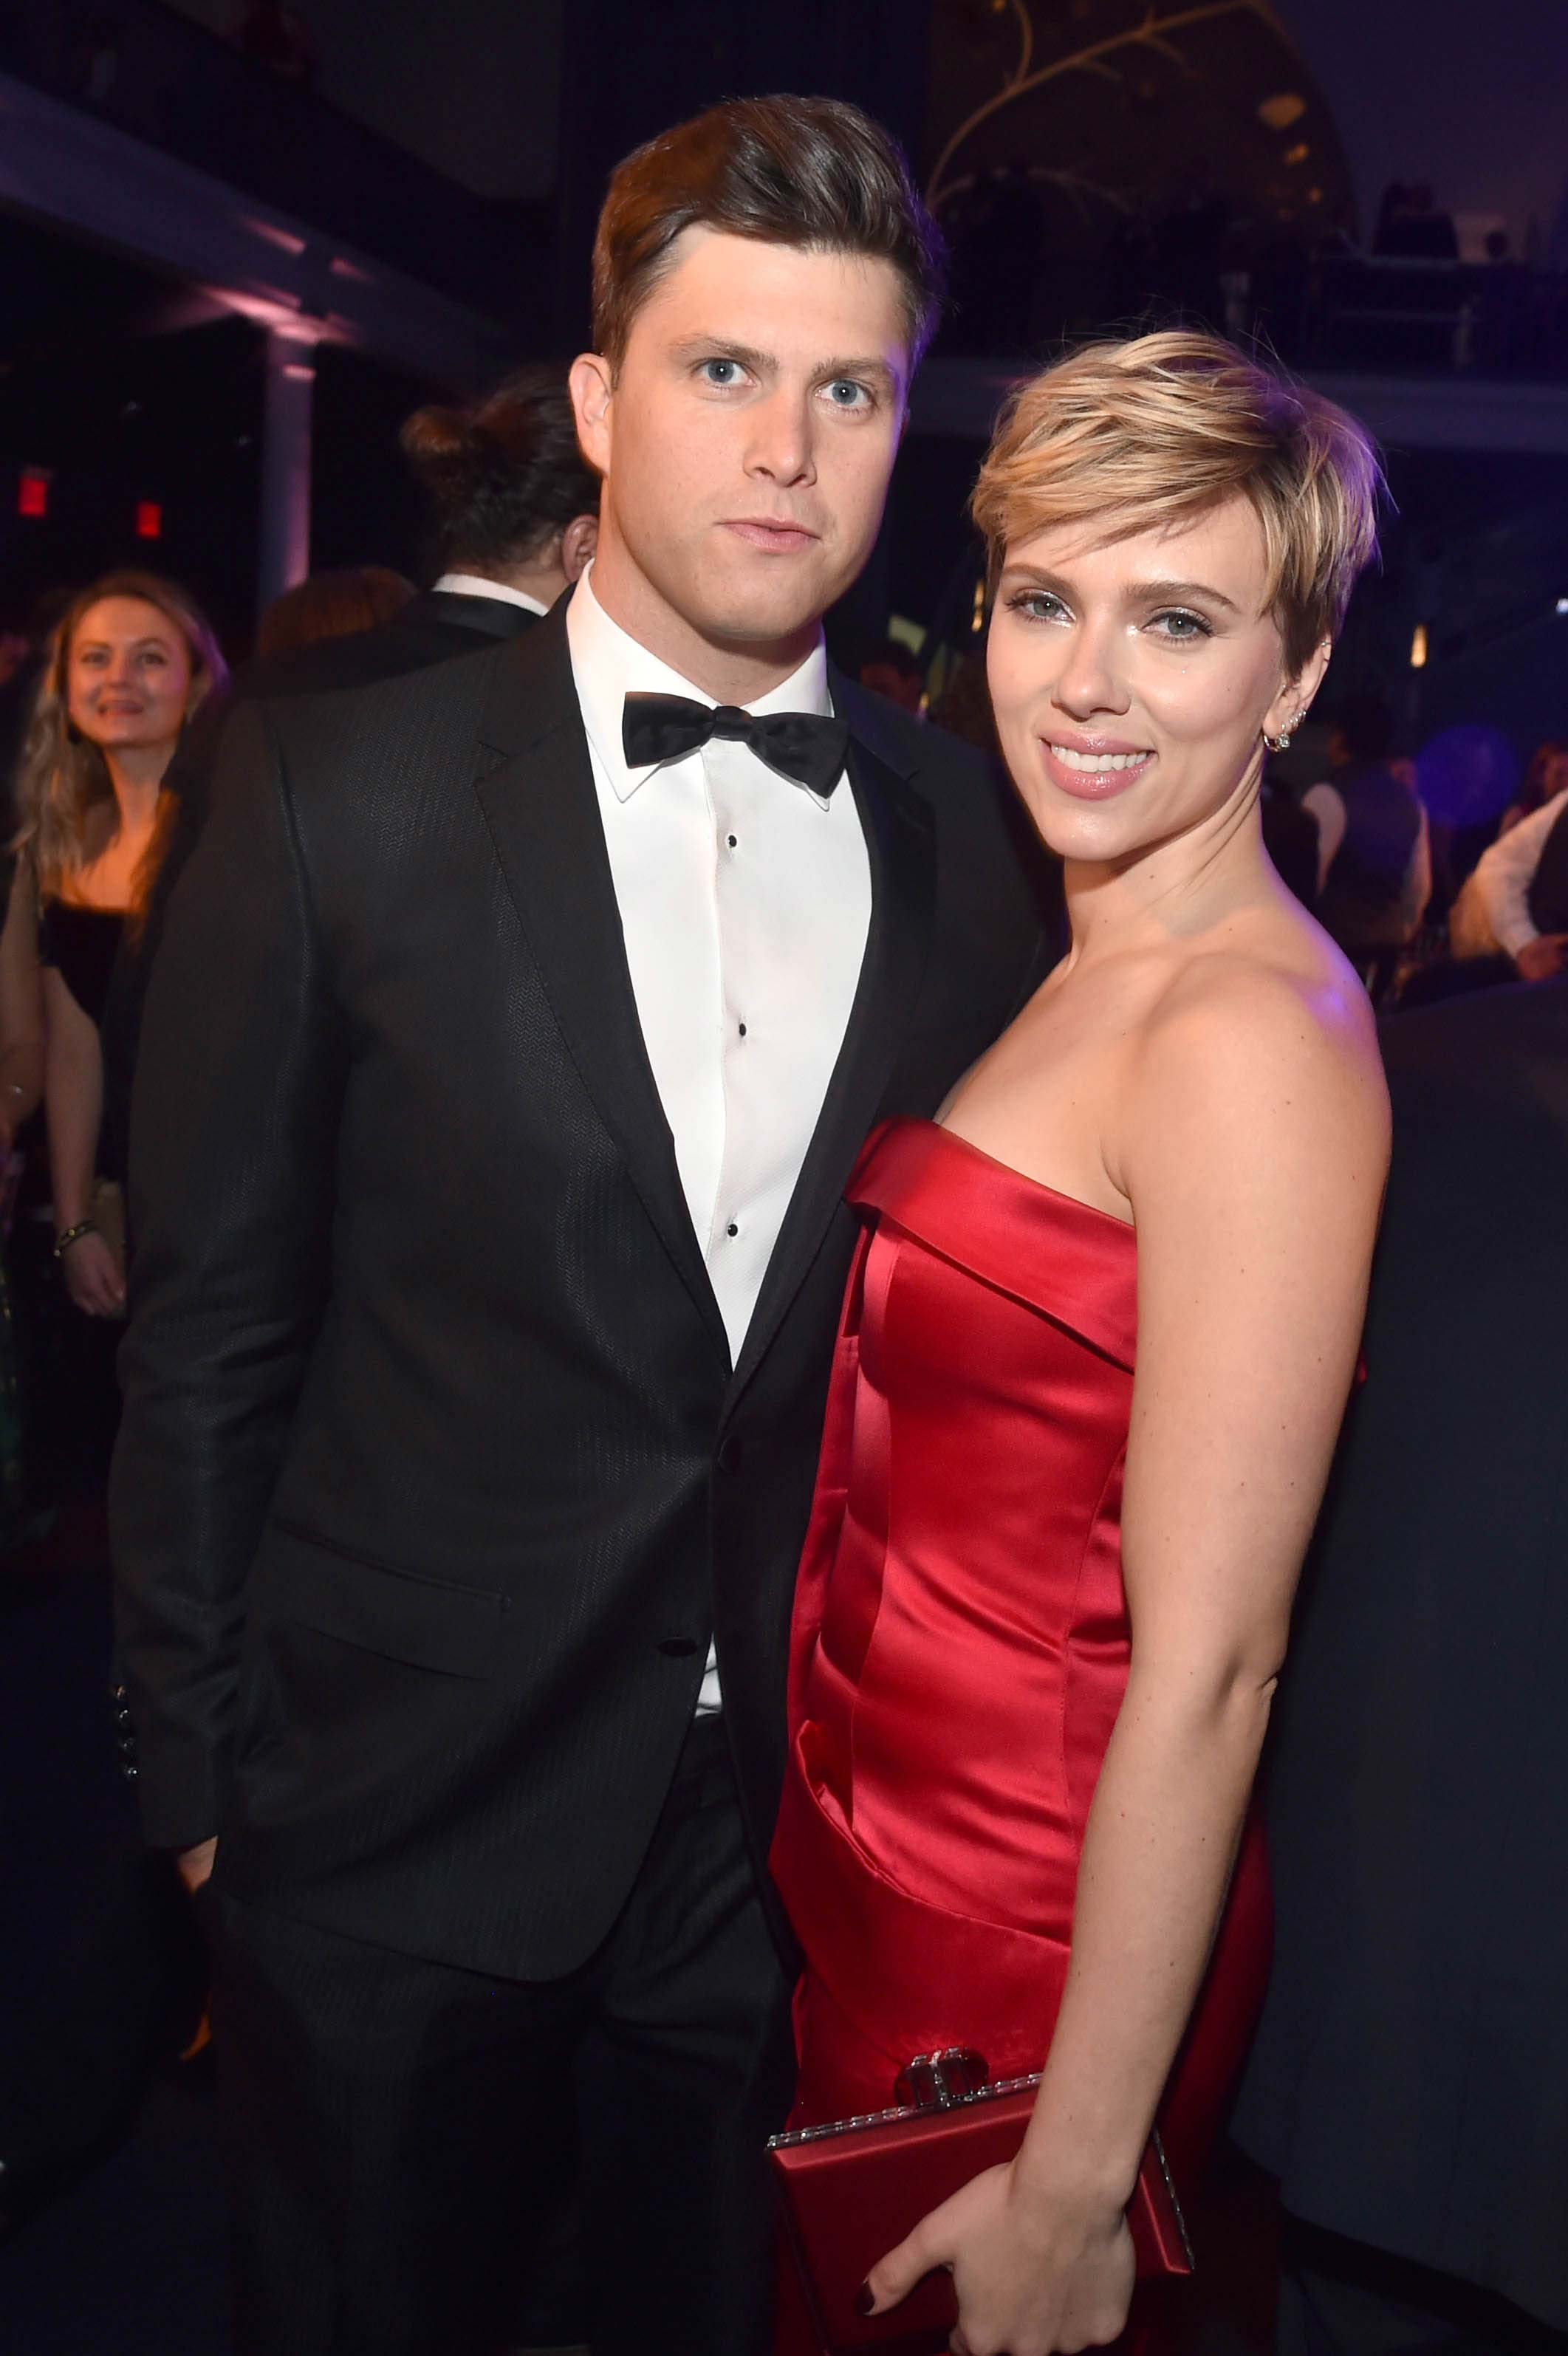 Scarlett Johansson and Colin Jost pose for pics at first red carpet ...